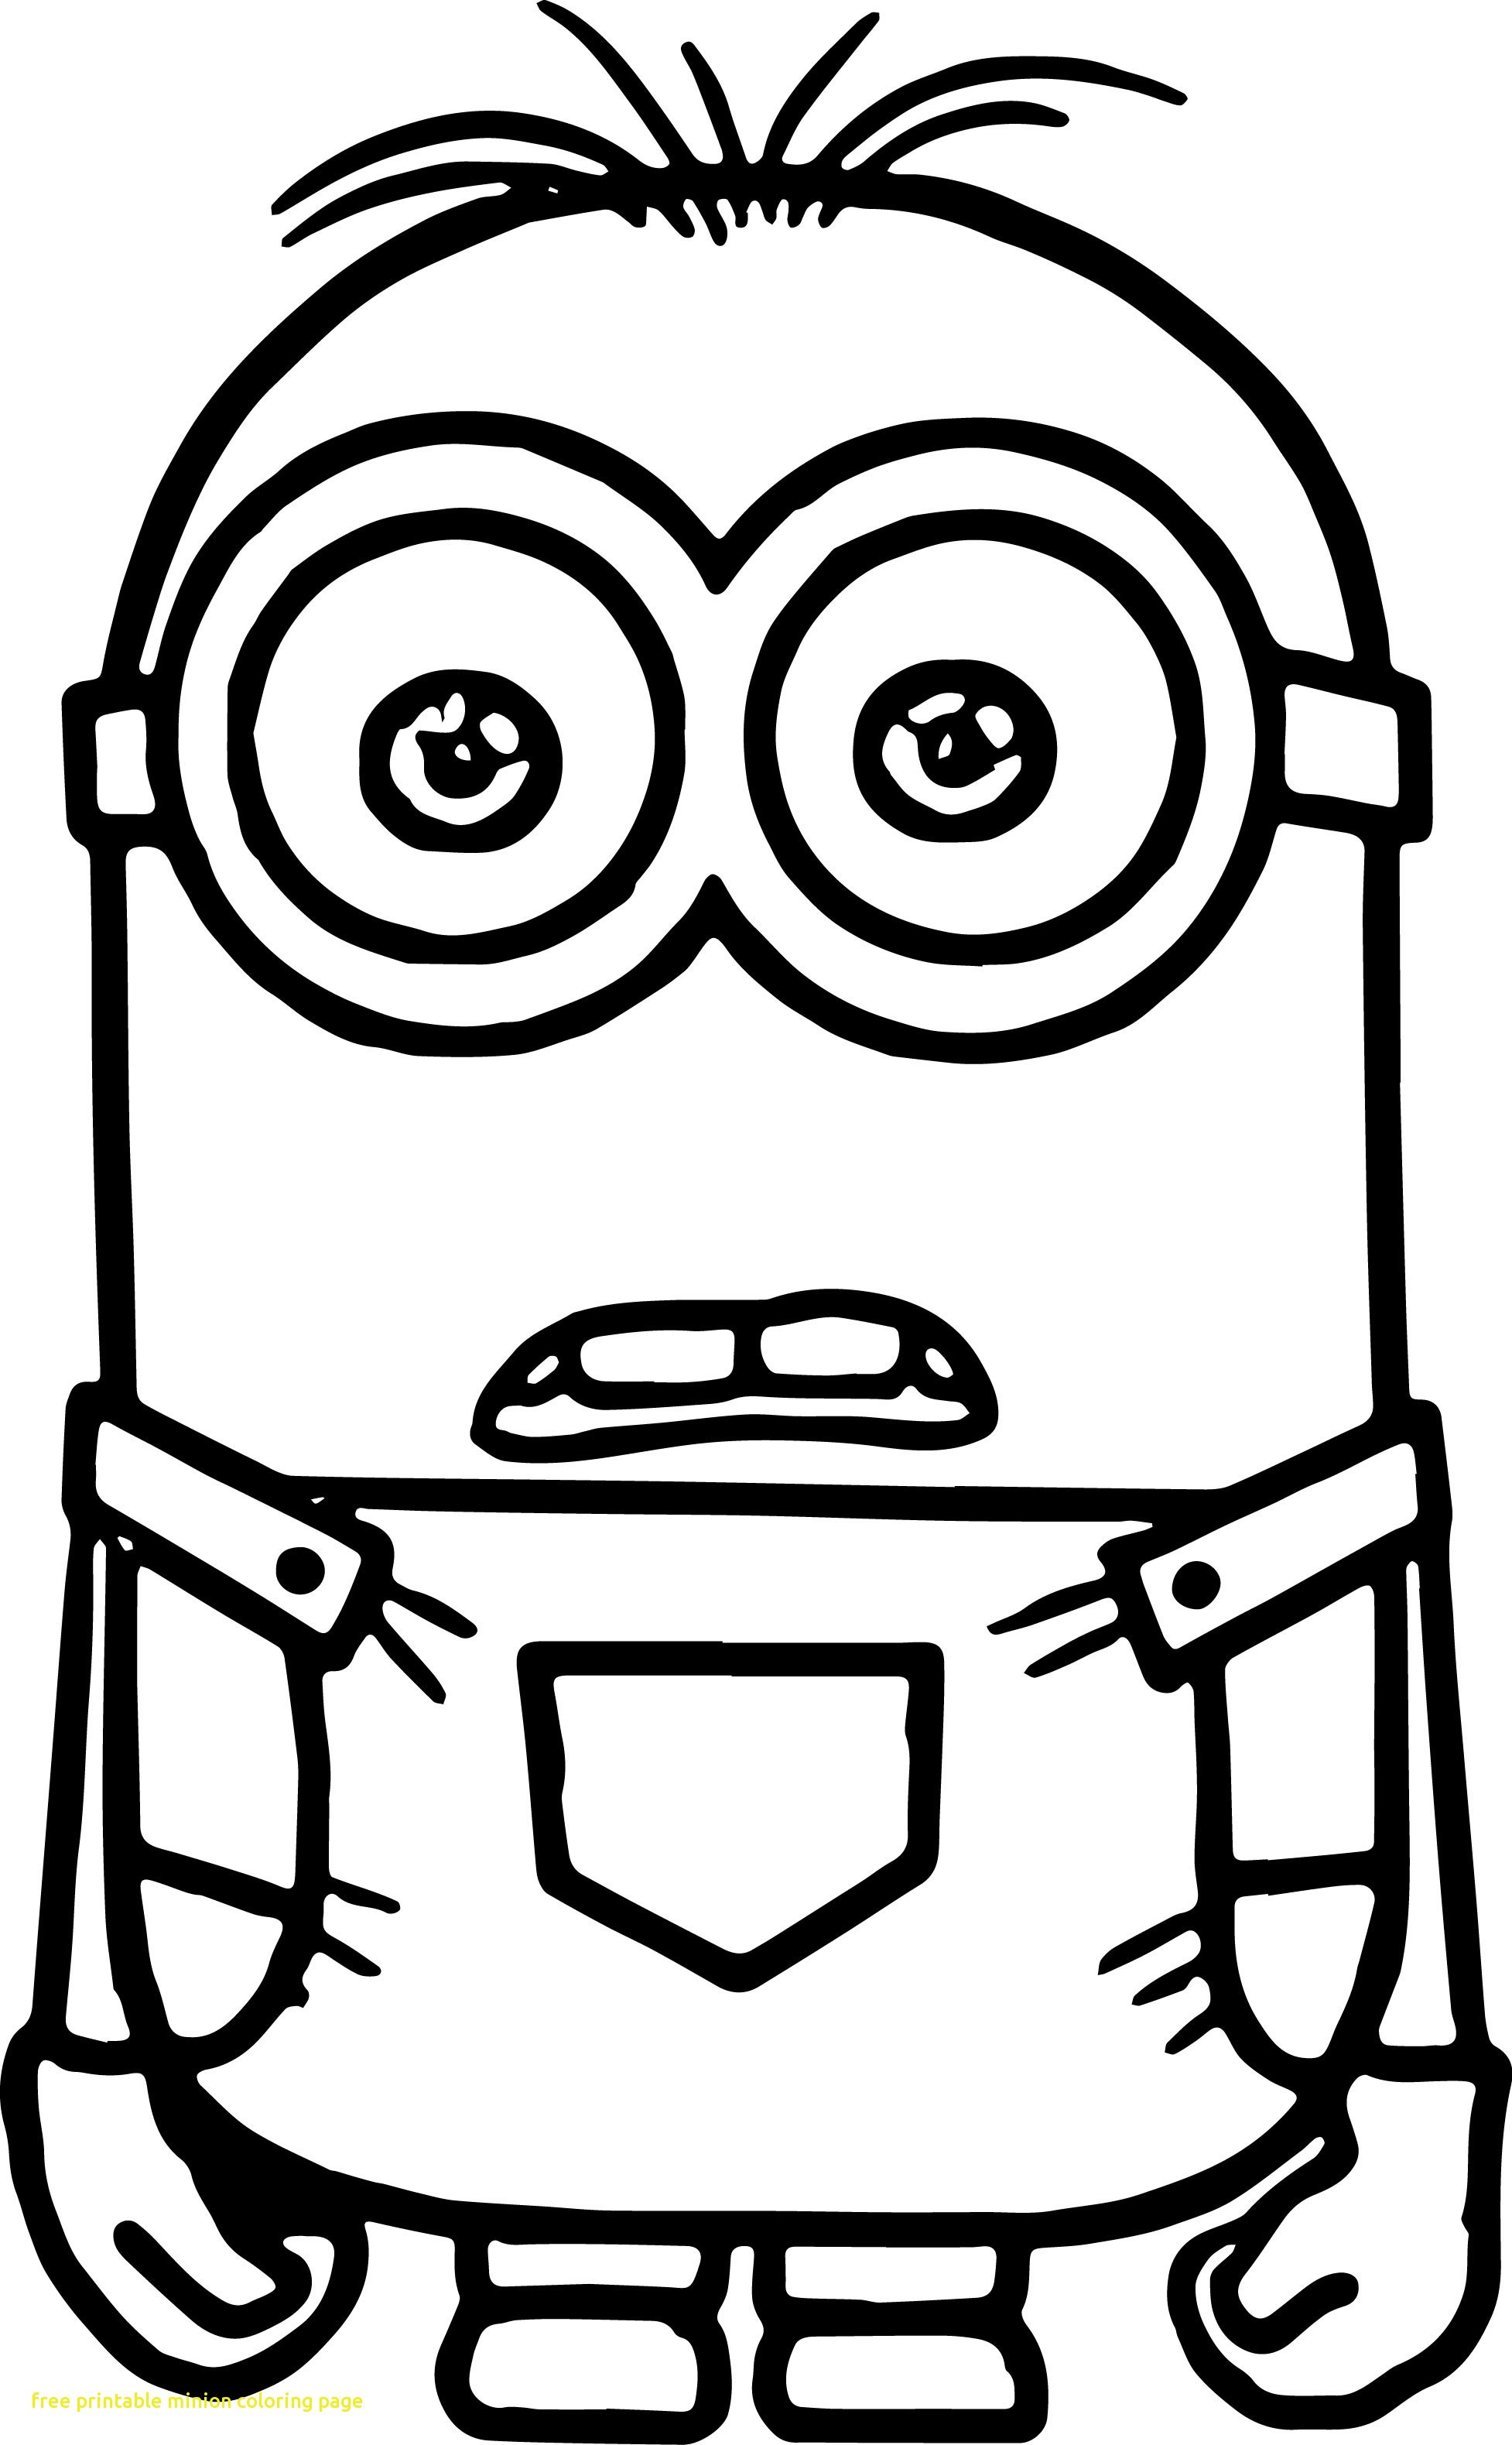 1954x3159 Free Printable Minion Coloring Page With Pages Tearing To Print